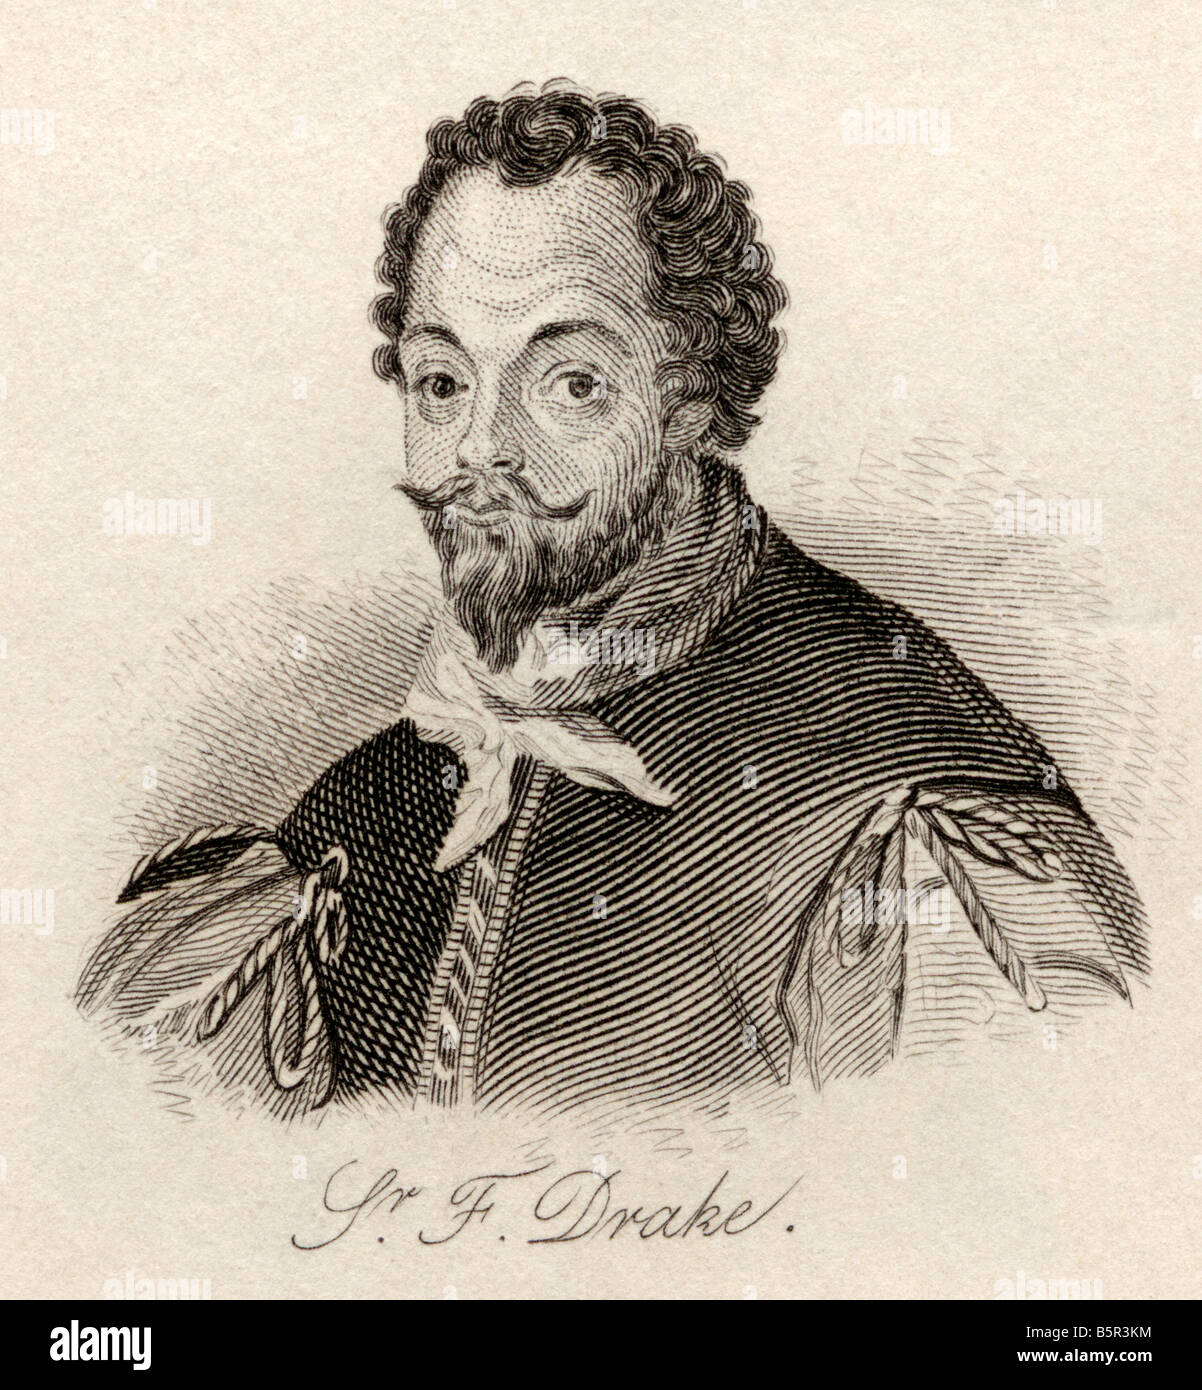 Sir Francis Drake c 1540 1543 to 1596 Vice admiral English privateer navigator slaver and politician of the Elizabethan - Stock Image